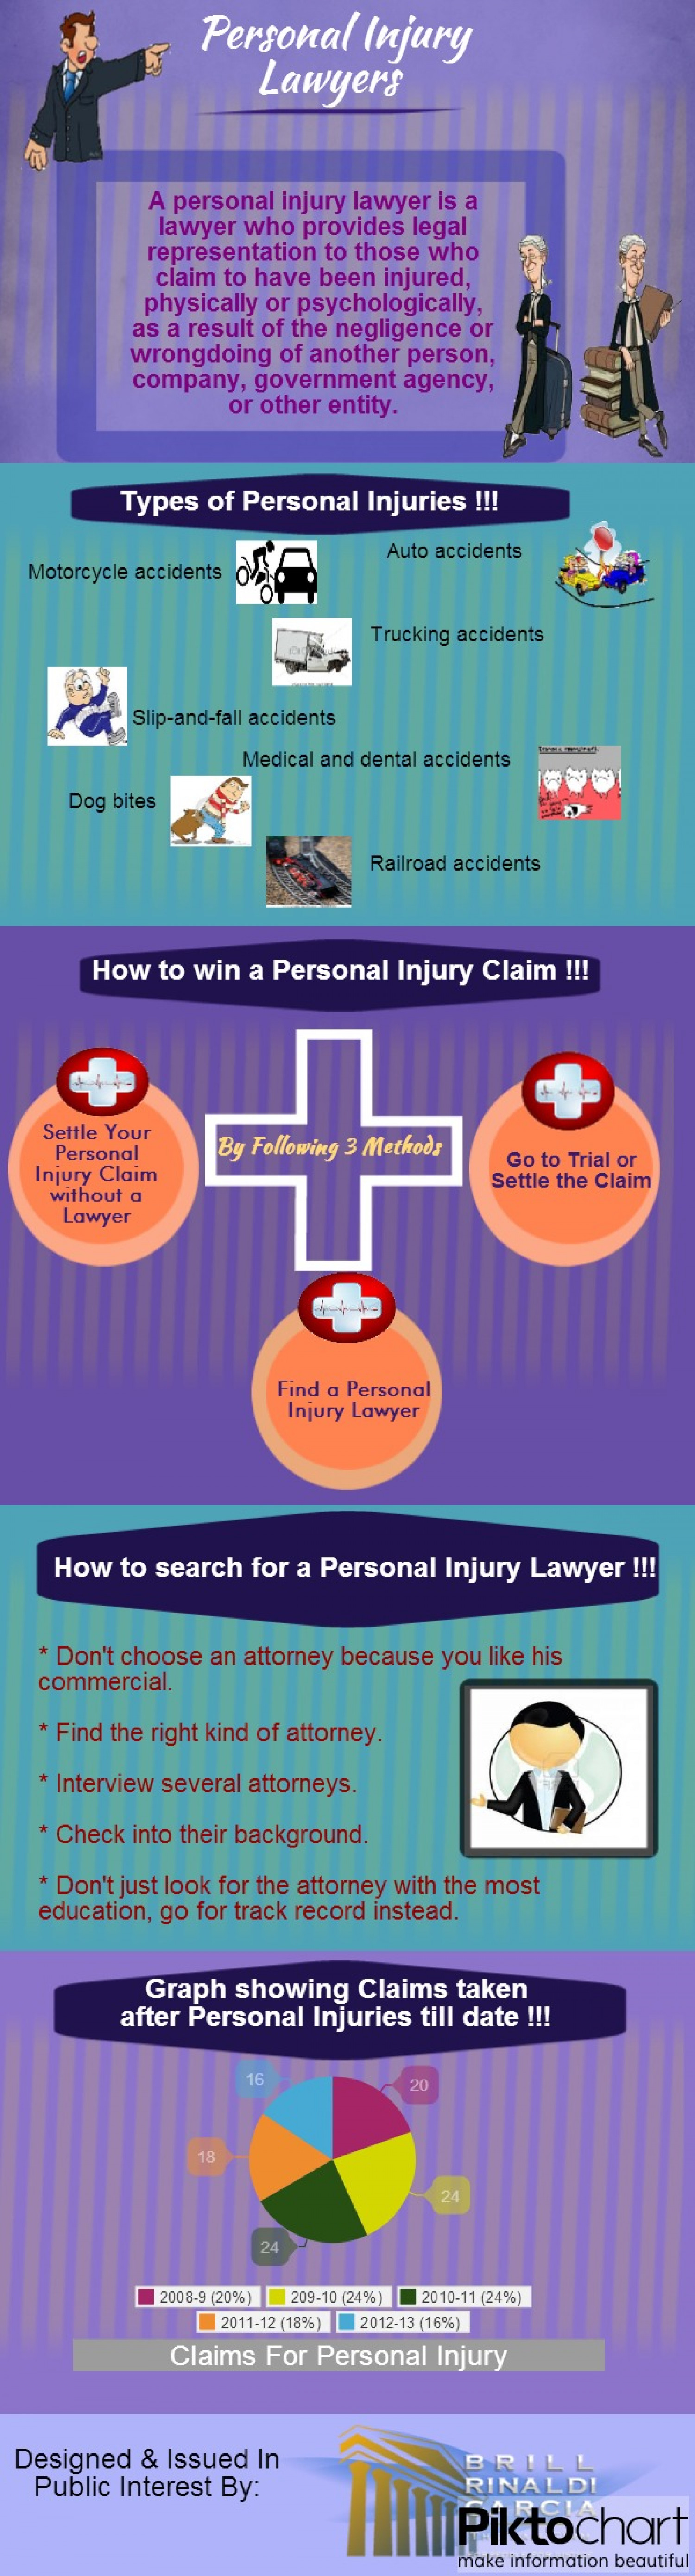 Personal Injury Lawyer Infographic